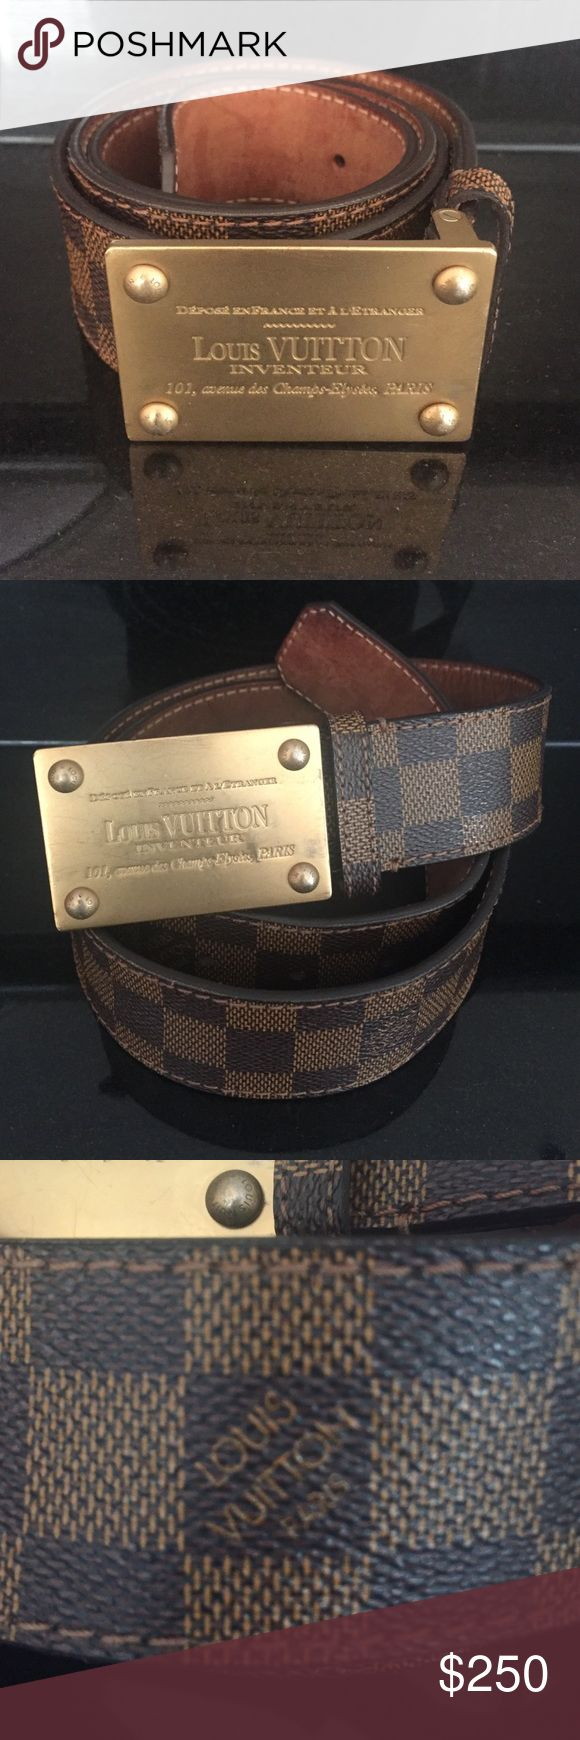 Louis Vuitton Belt Brown leather, Real with serial number, Rarely worn, In Good Condition Louis Vuitton Accessories Belts